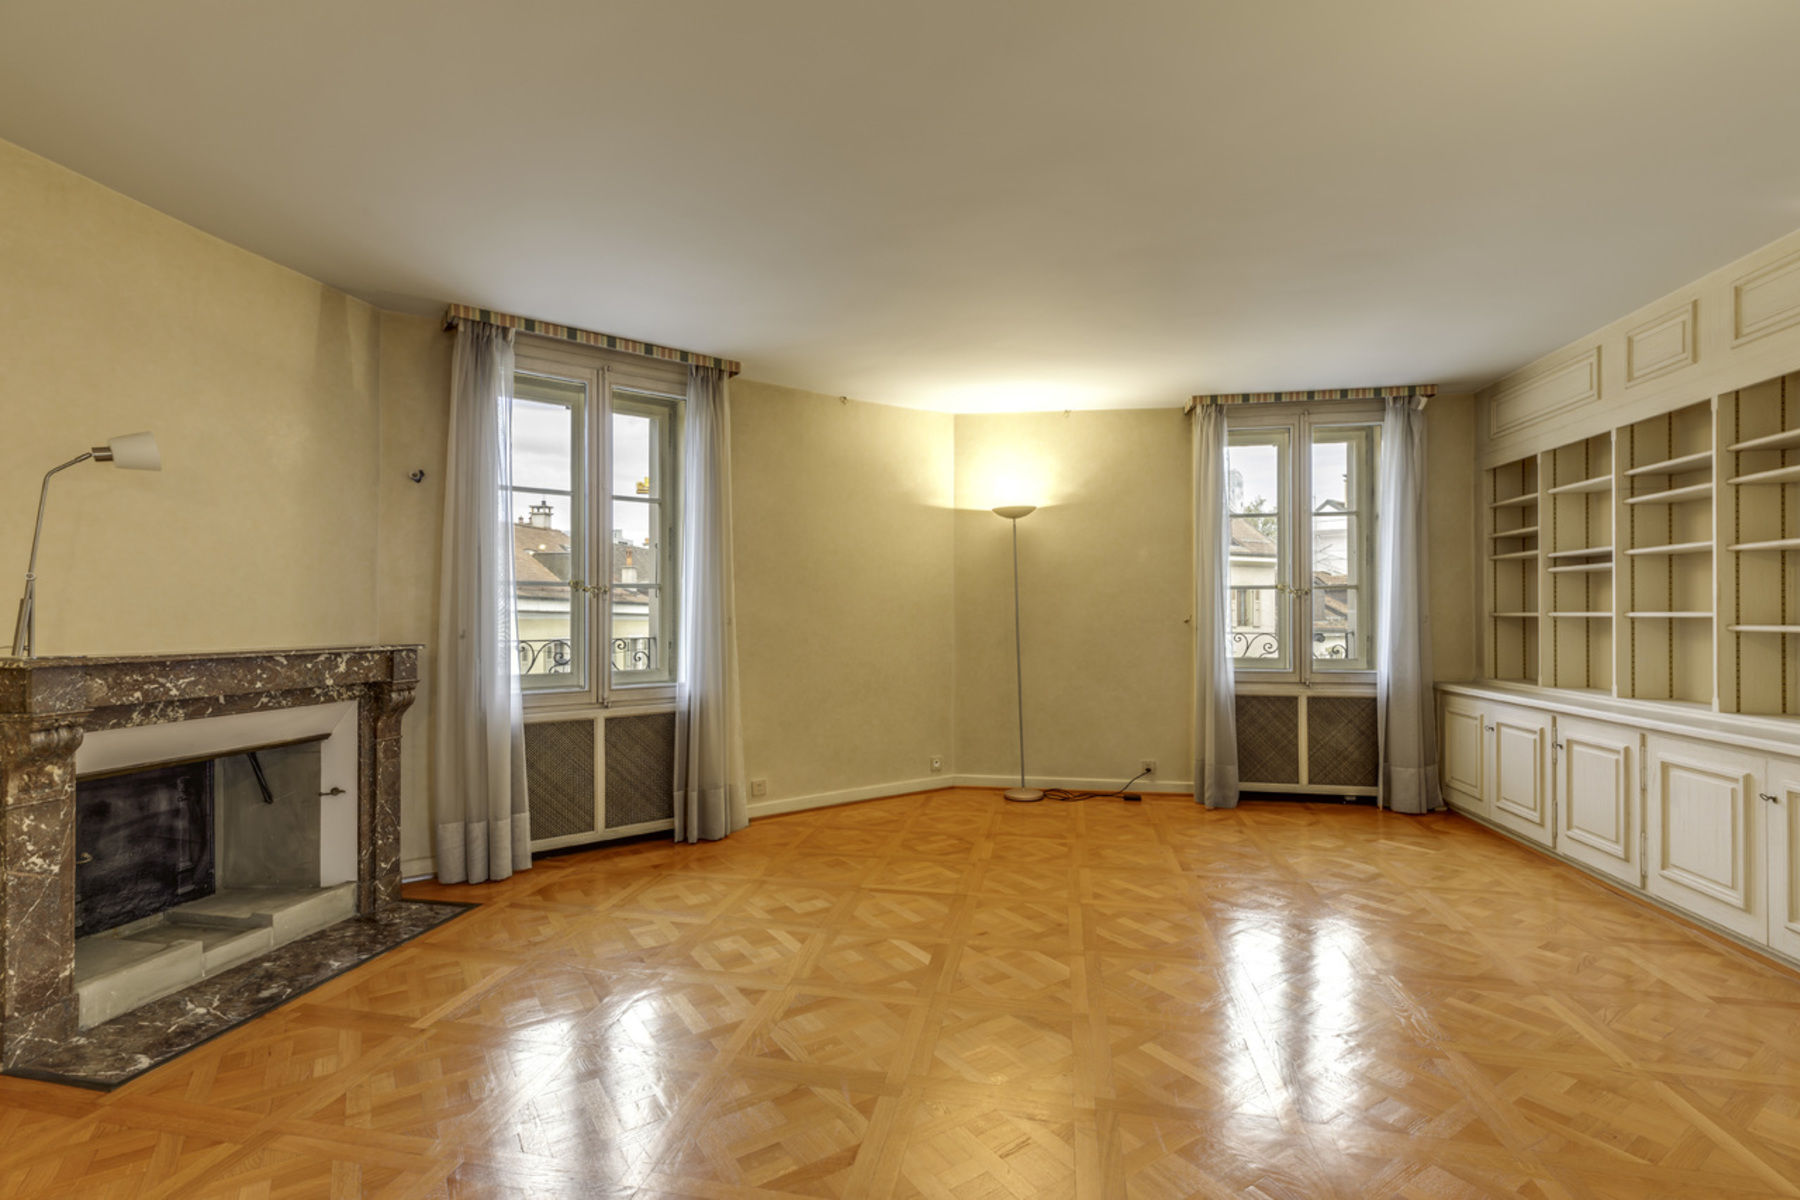 独户住宅 为 销售 在 Magnificent townhouse in the heart of Carouge old town Genève, 瑞士其他地方, 瑞士的其他地区, 1227 瑞士